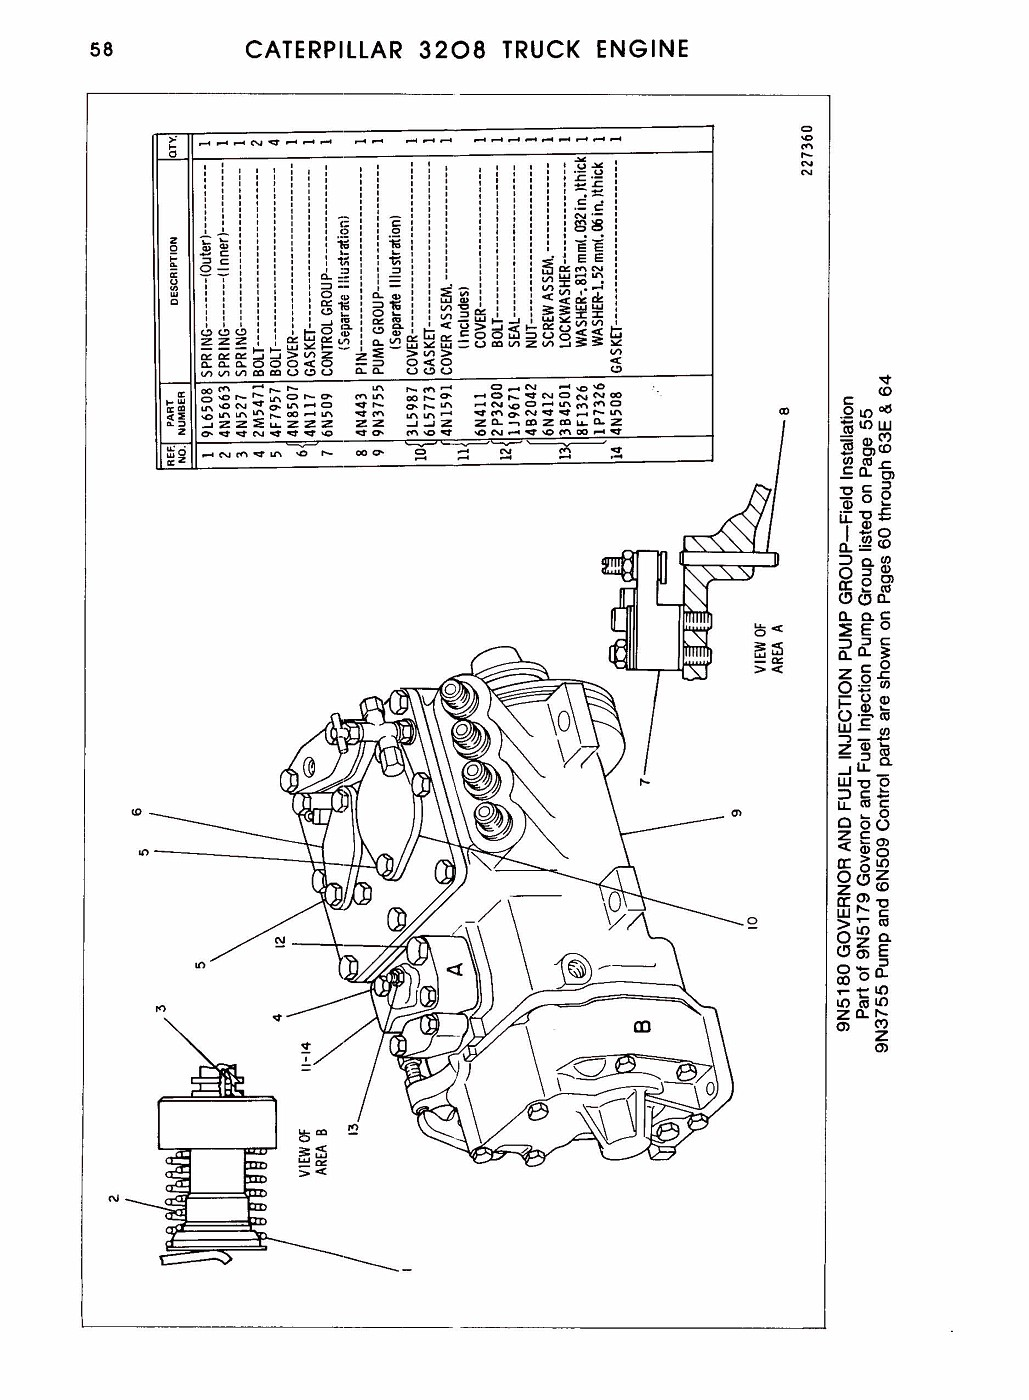 Cat 3408 Parts Manual Auto Electrical Wiring Diagram Throat Microphone Dragonfire Humbucker Infrared Camera Schematic 2001 Chevy Astro Fuel Pump